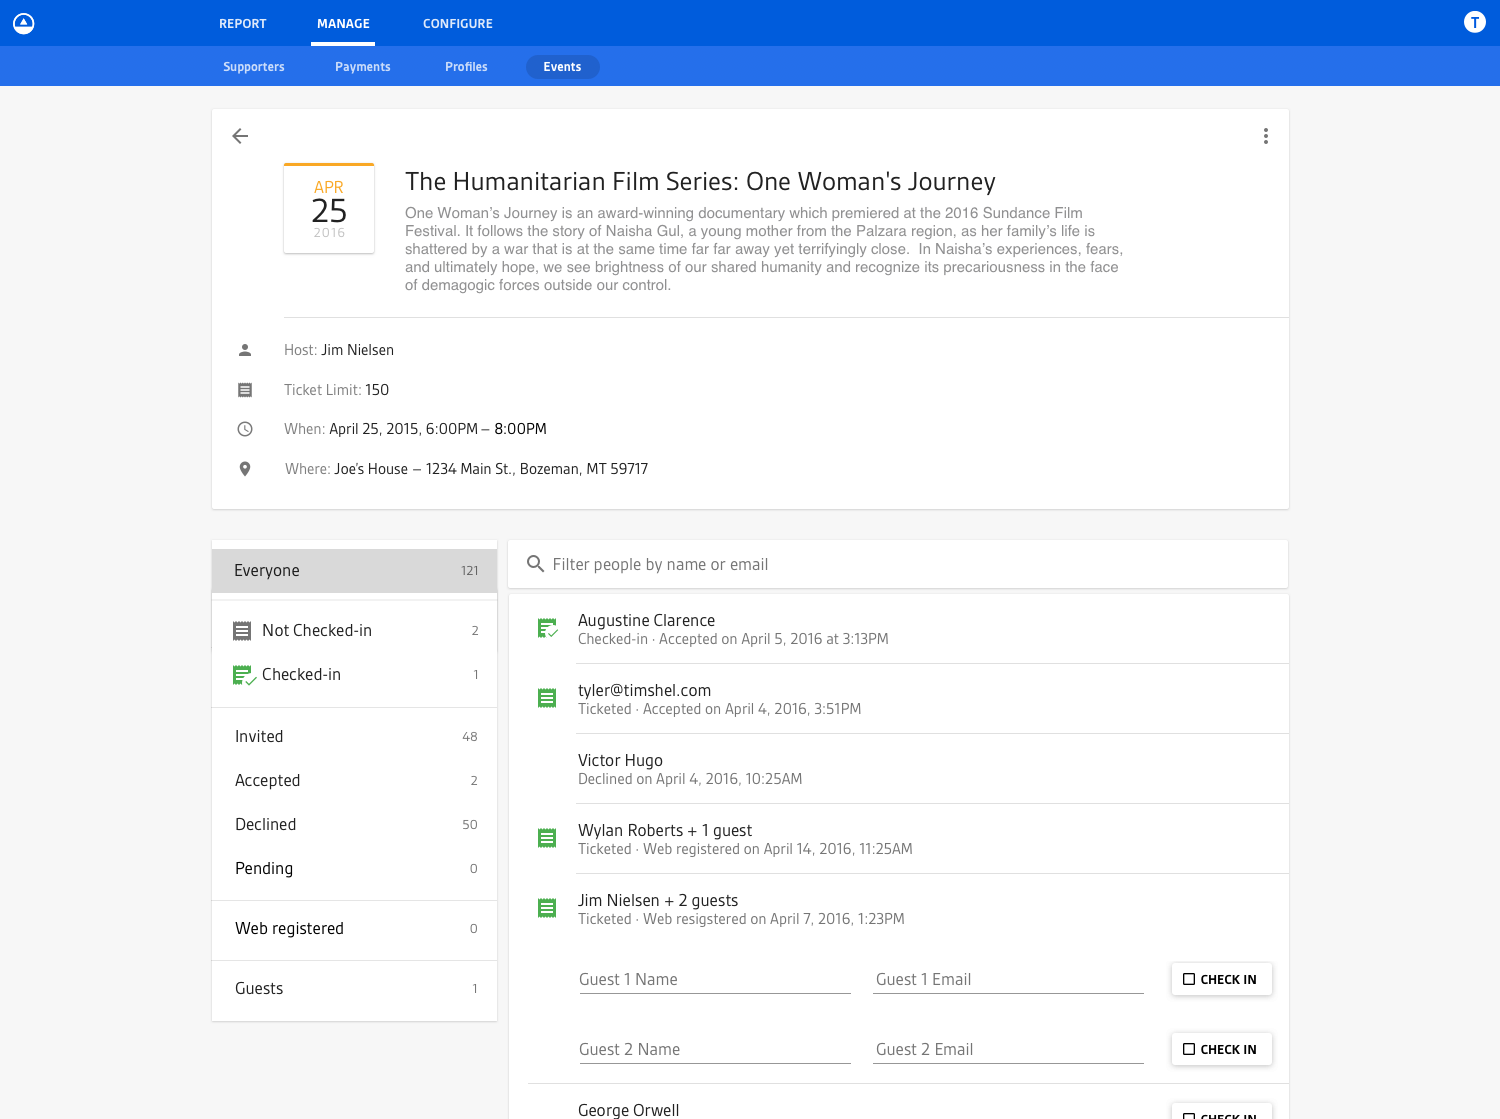 Screenshot of the fourth iteration of the individual event view for an event occurring today